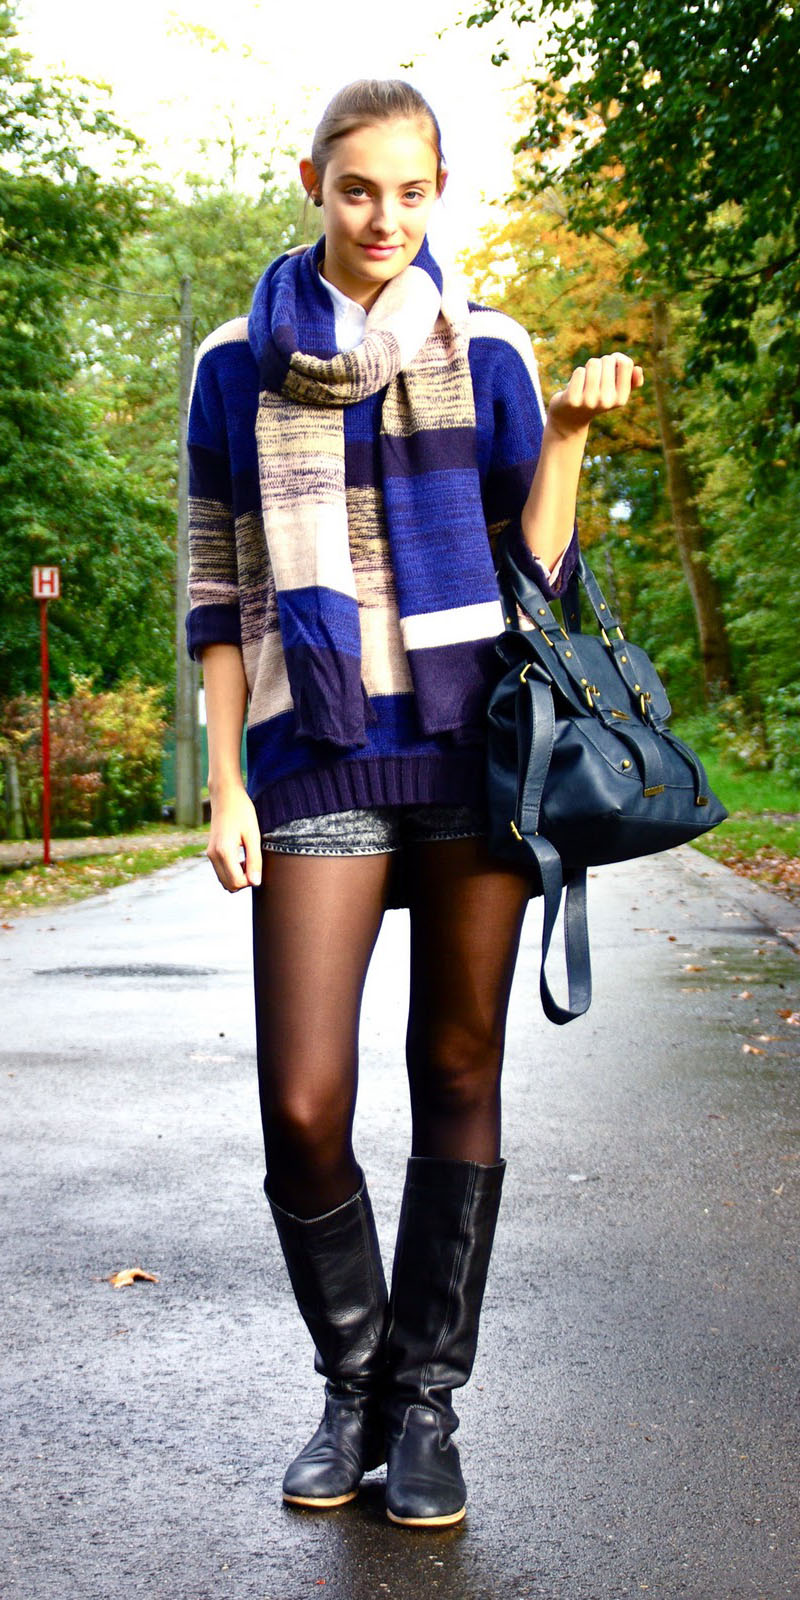 blue-med-shorts-blue-med-sweater-stripe-blue-med-scarf-hairr-pony-blue-bag-black-tights-black-shoe-boots-fall-winter-weekend.jpg